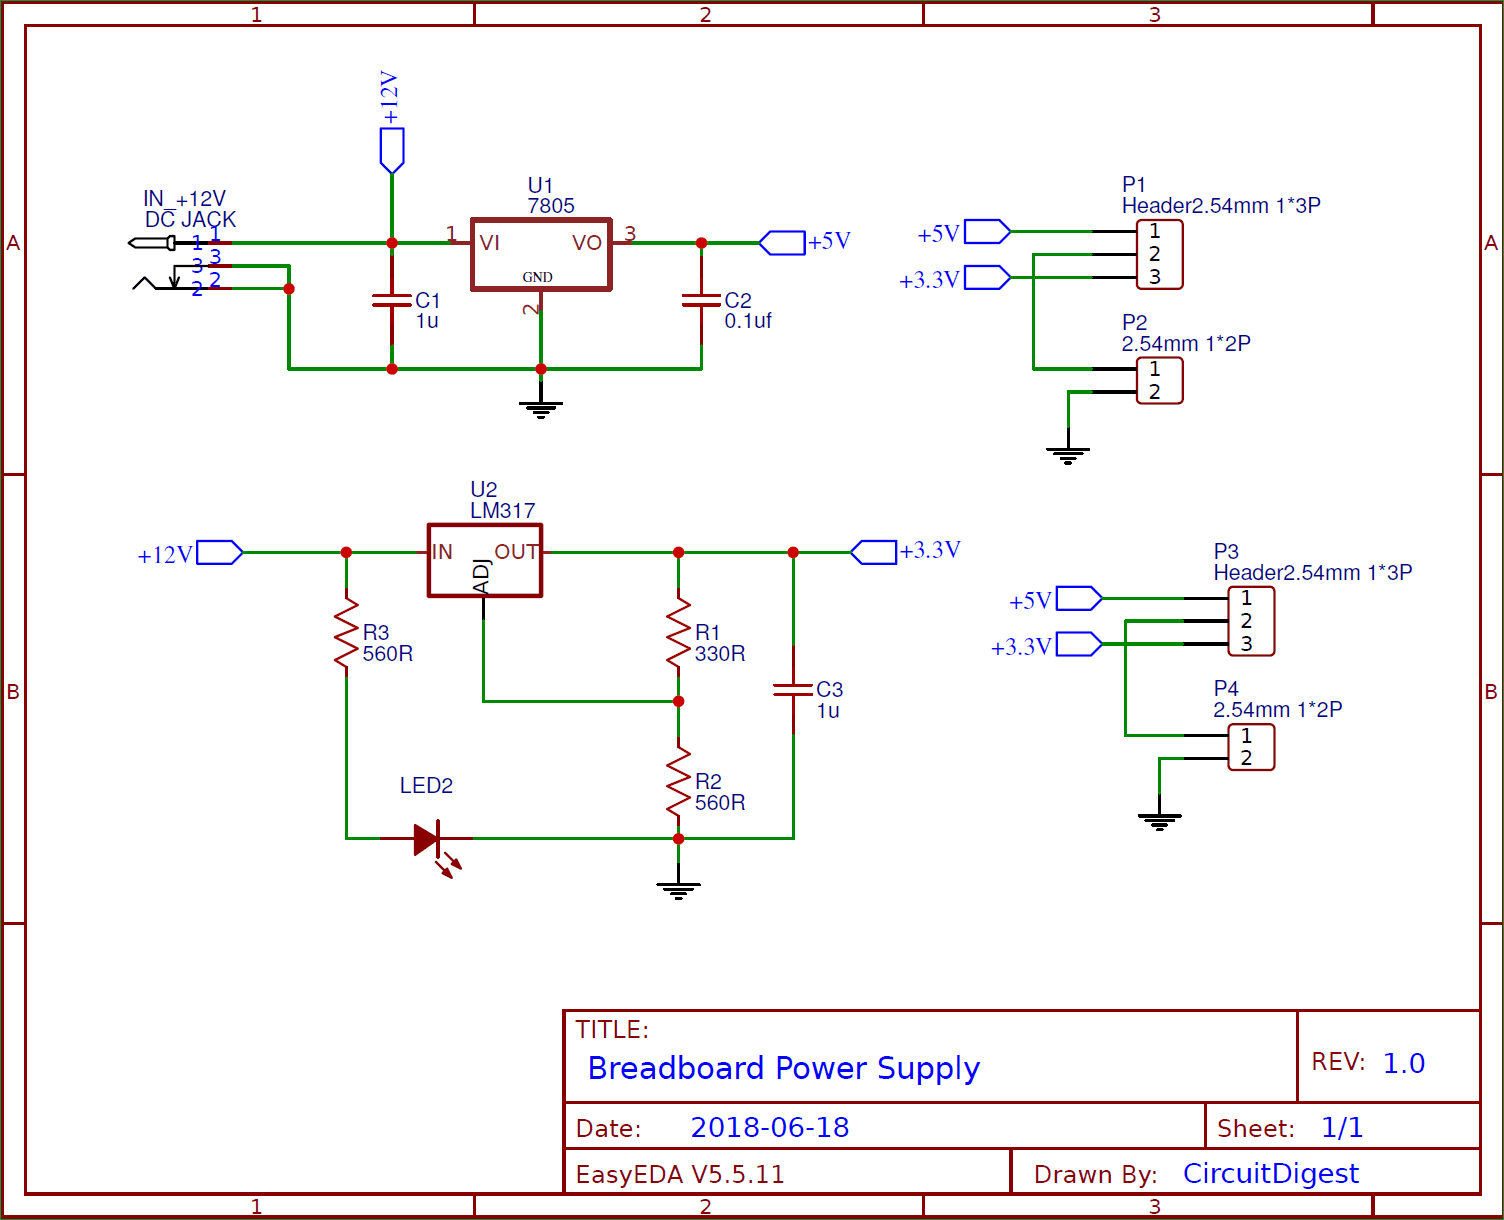 hight resolution of diy breadboard power supply circuit on pcb circuit diagram for diy breadboard power supply circuit on